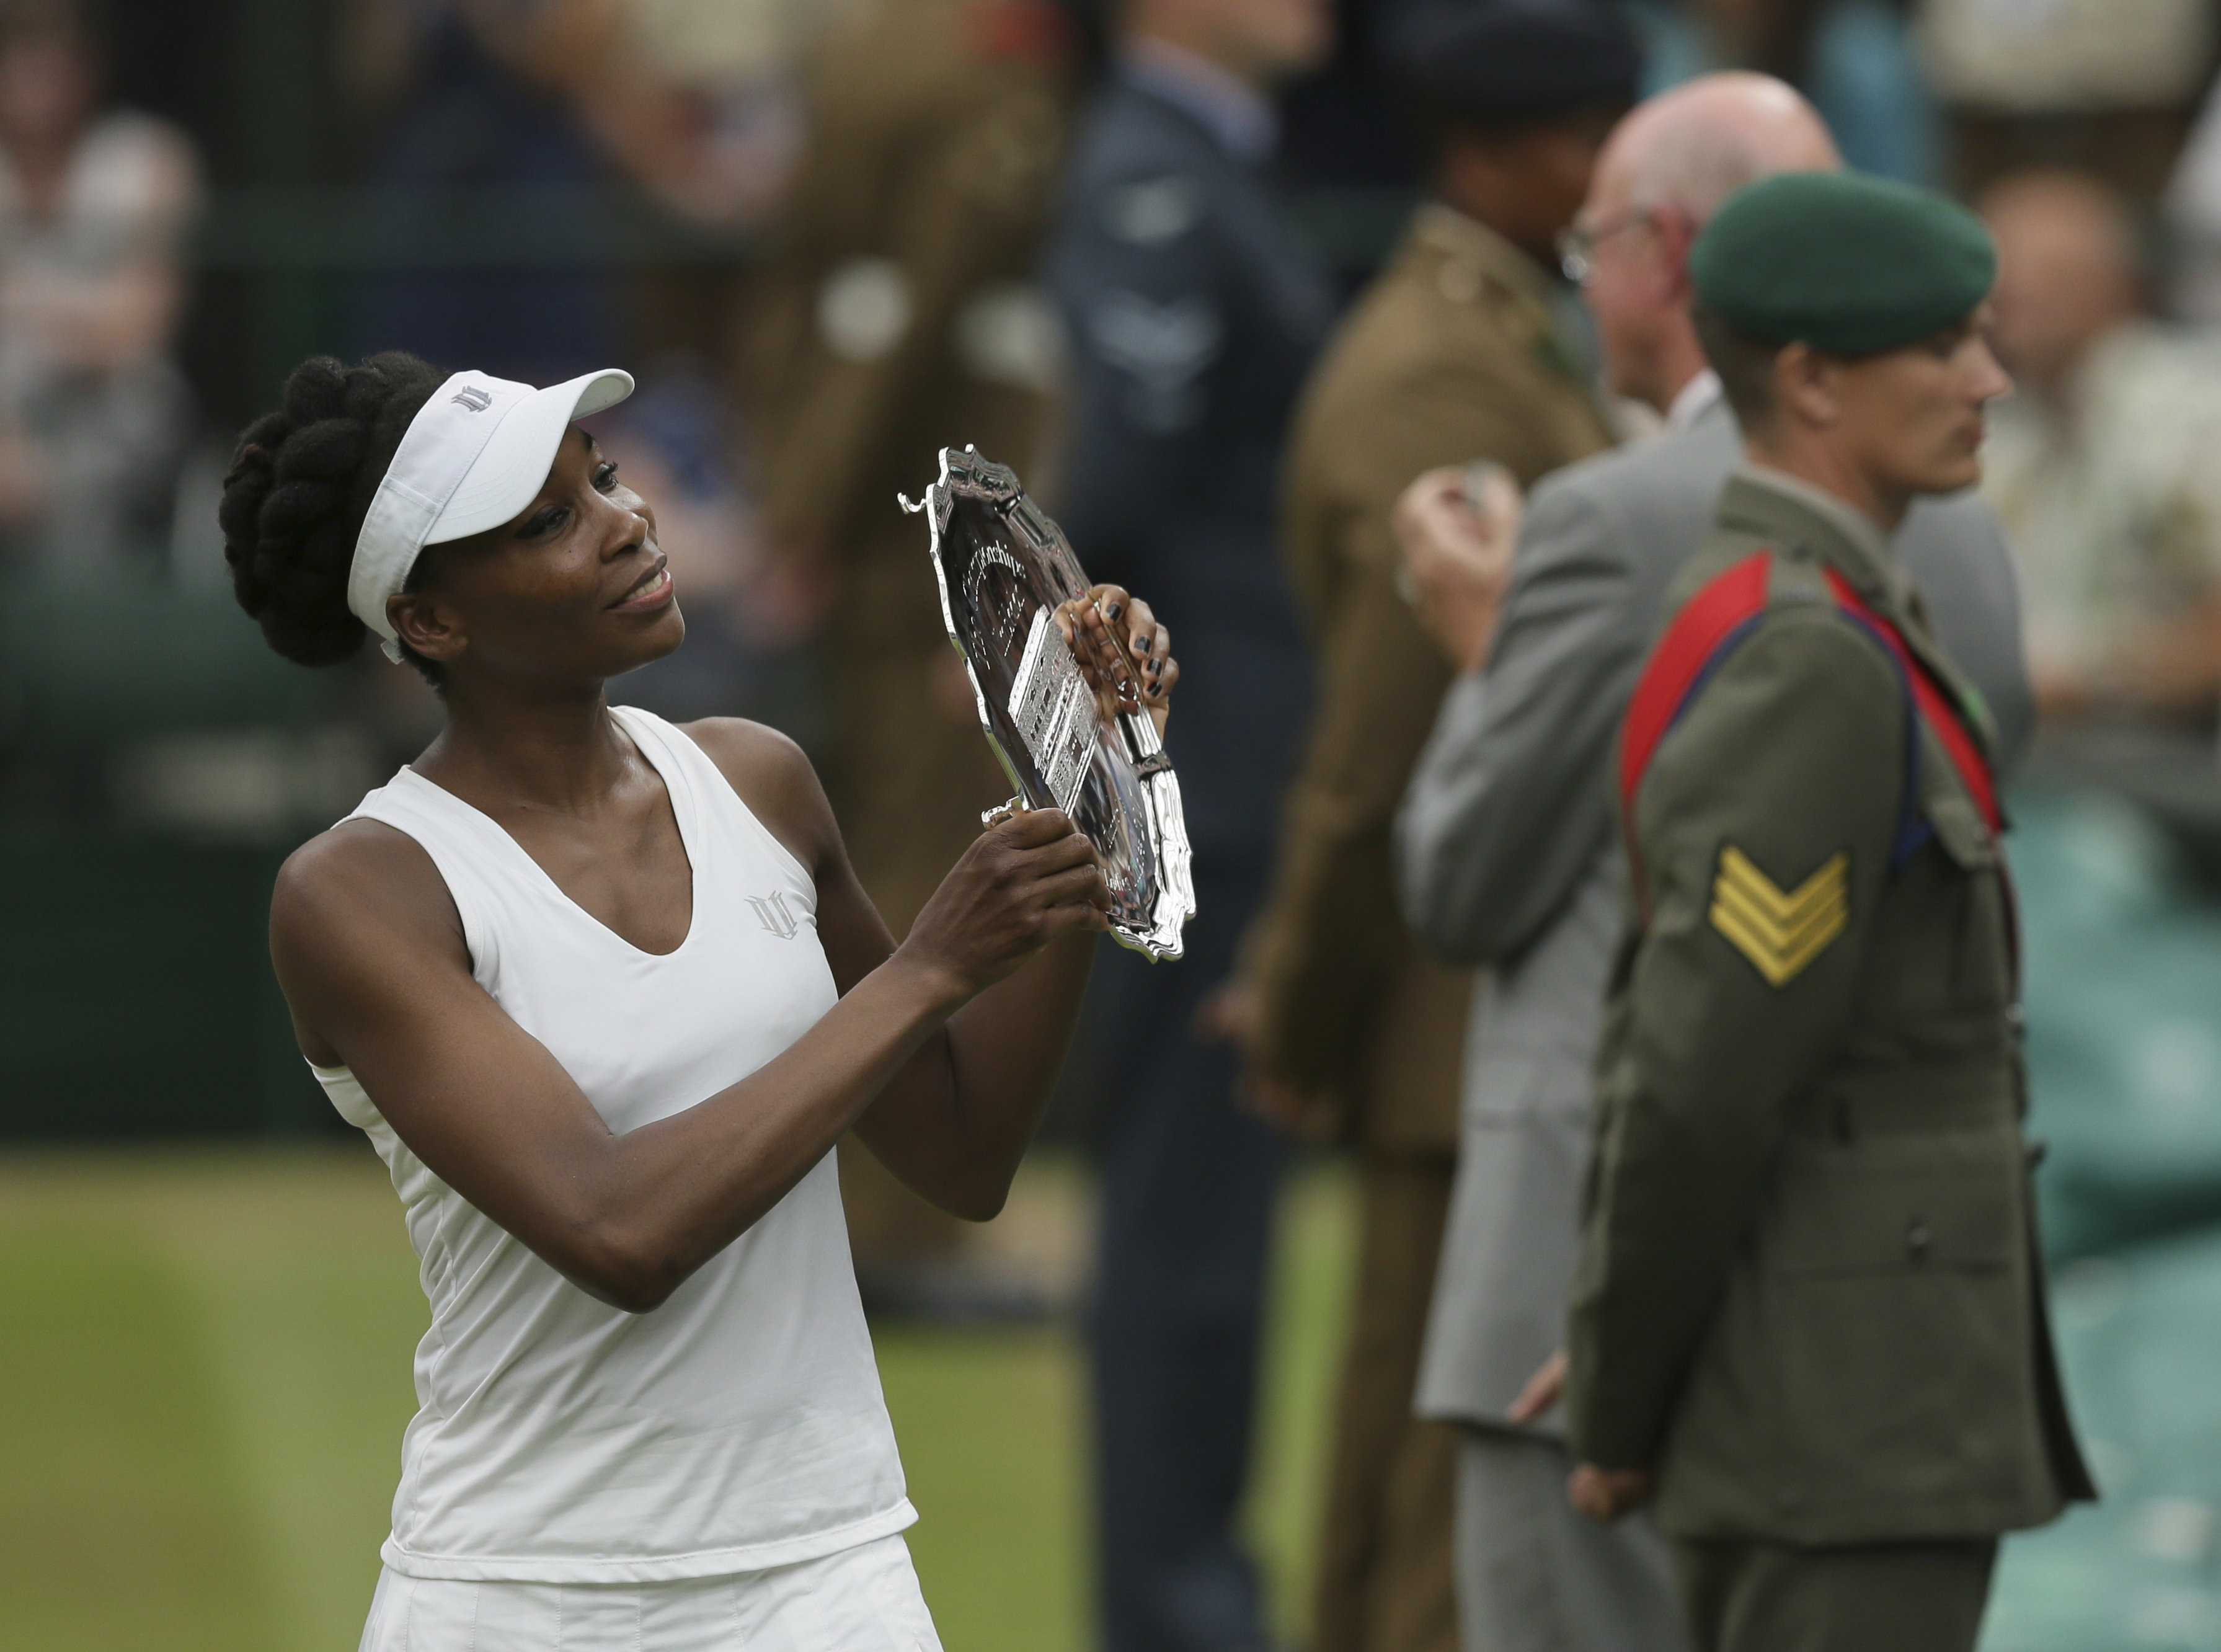 File-This July 15, 2017, file photo shows Venus Williams of the United States holding the runners-up plate after losing to Spain's Garbine Muguruza in the Women's Singles final match at the Wimbledon Tennis Championships in London.  Andy Roddick was the l